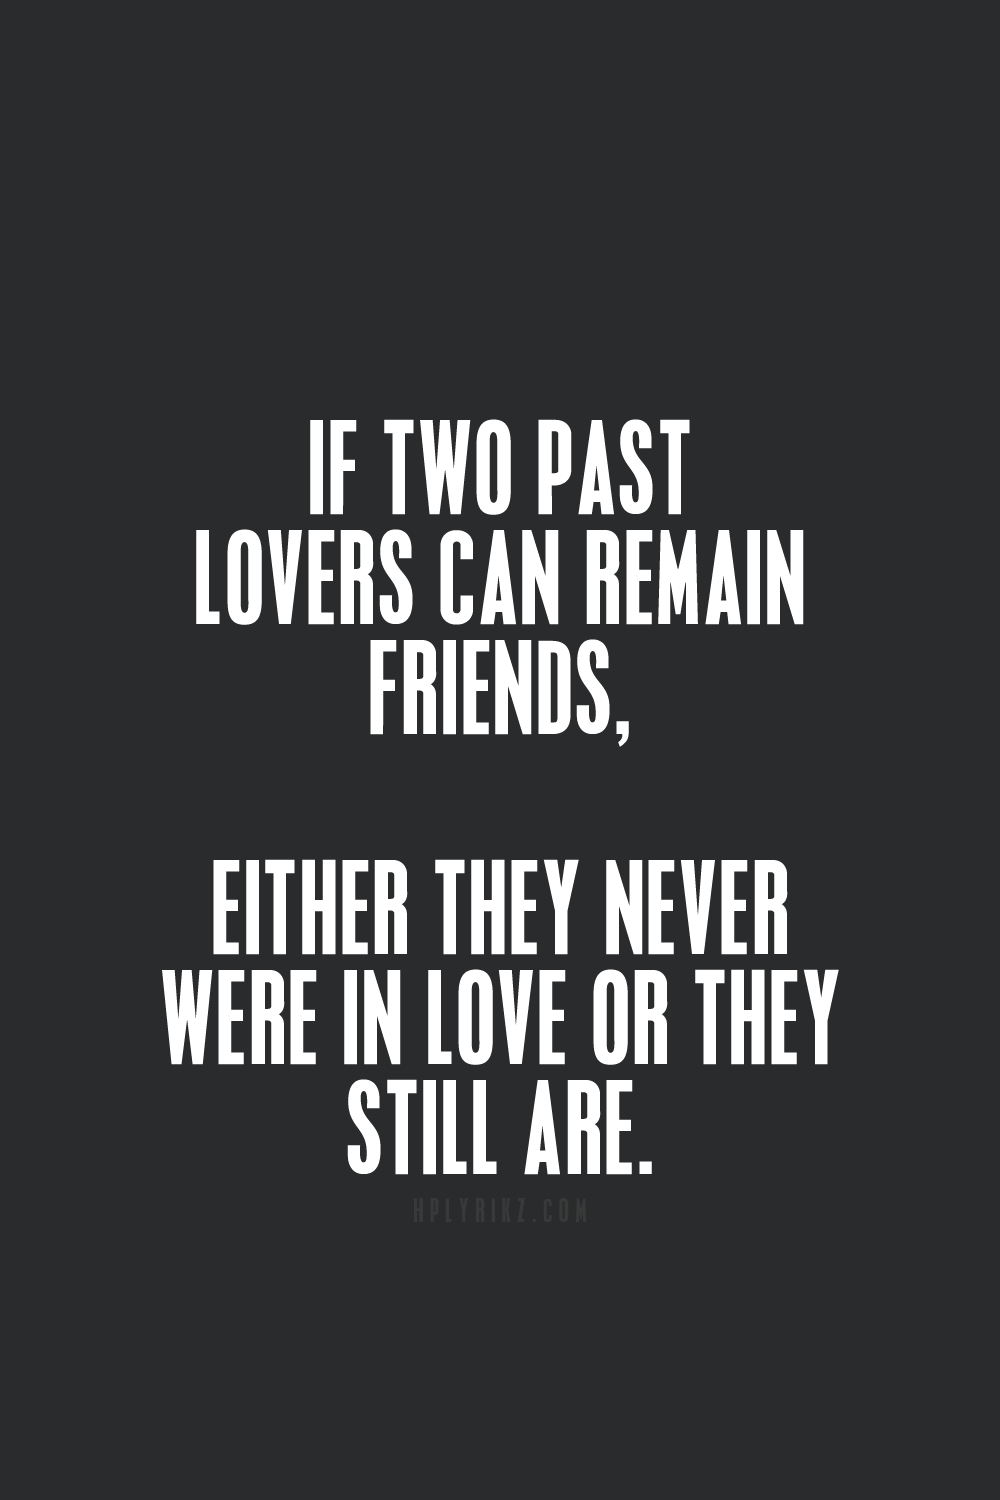 If two past lovers can remain friends either they never were in love or they still are Weslee Mykel me & you remained best friends because we are still